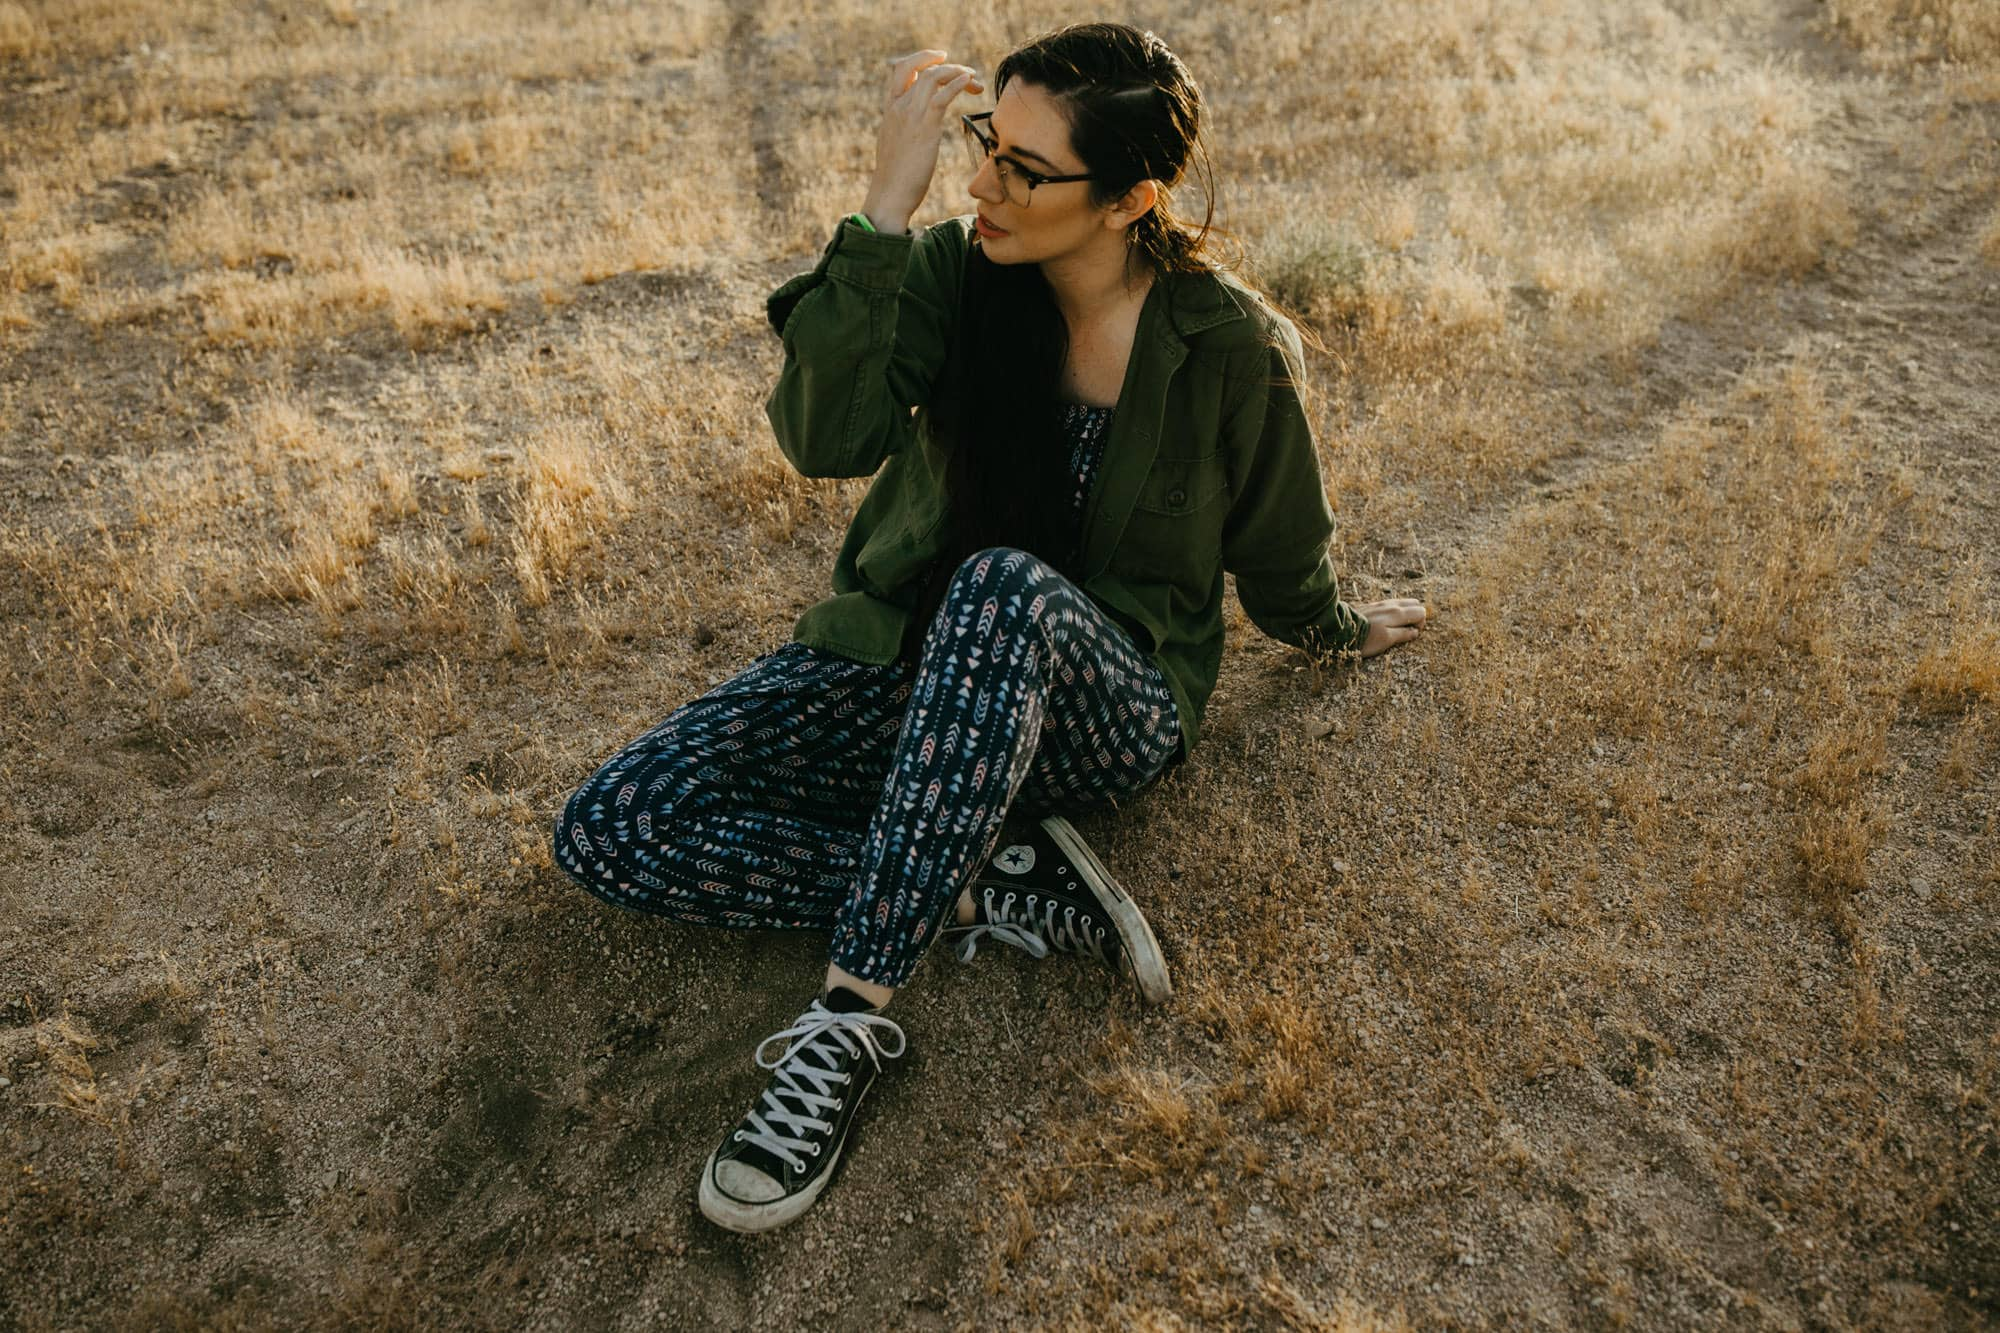 editorial in joshua tree